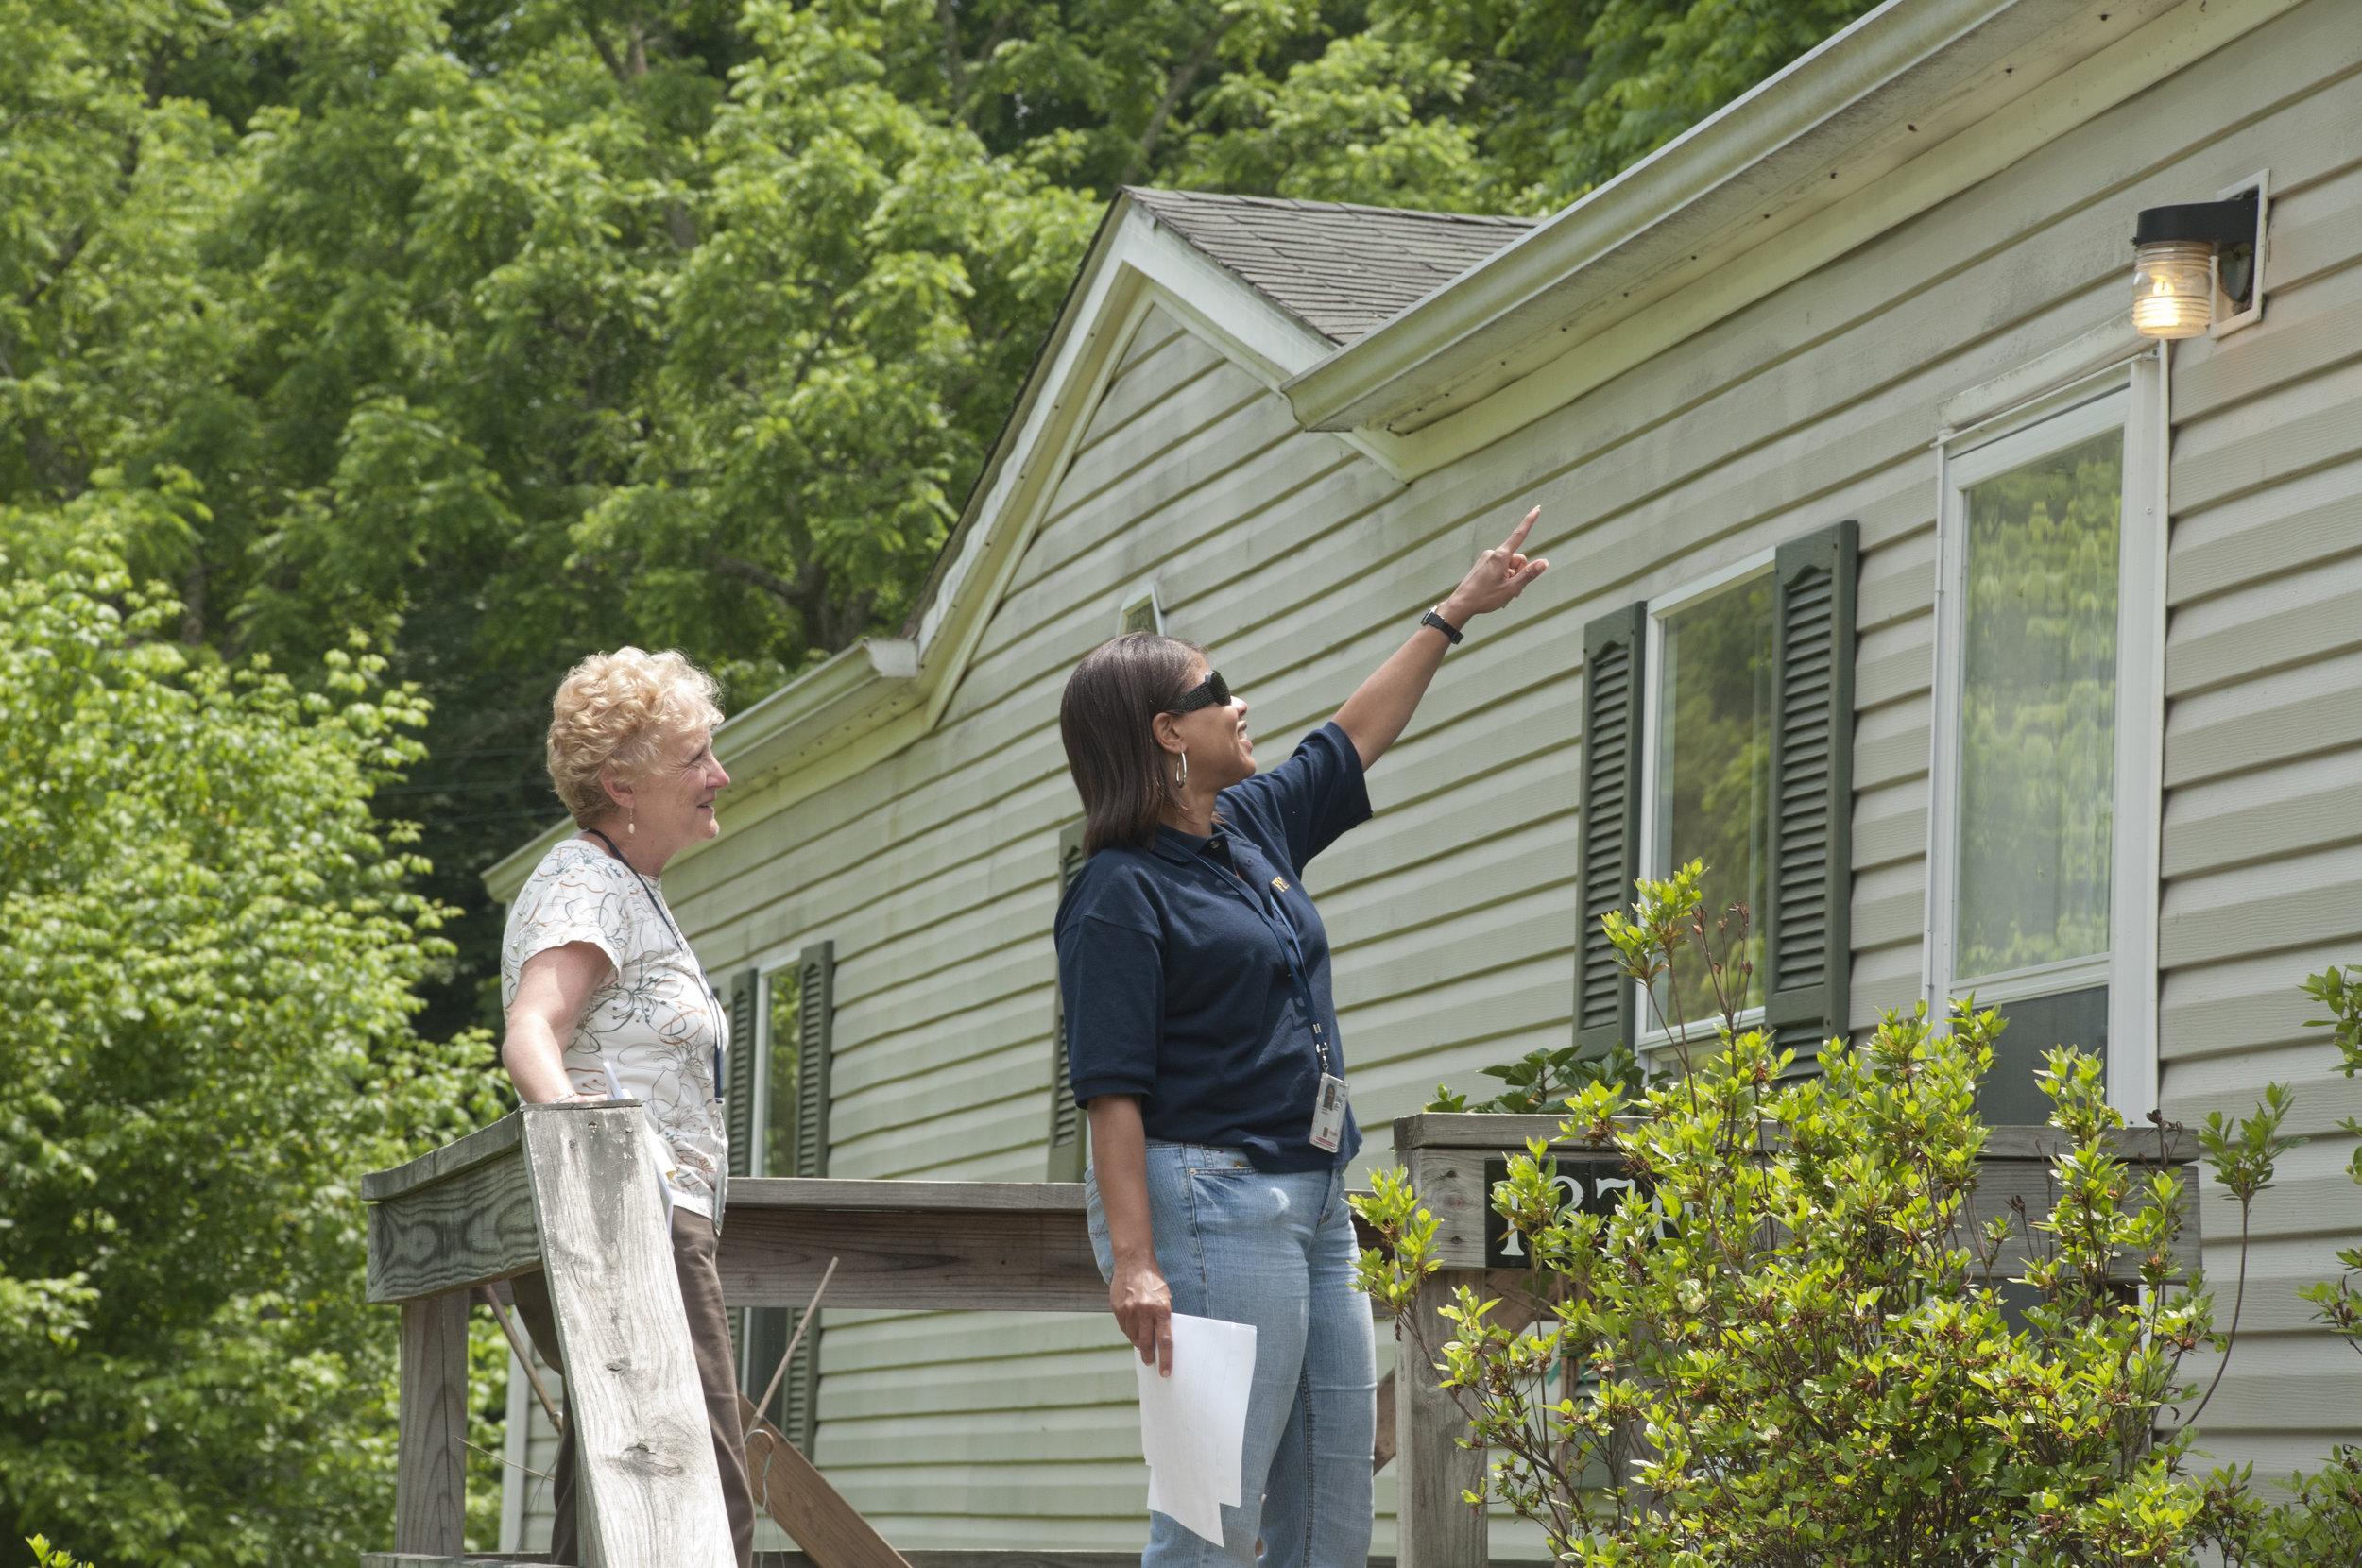 FEMA_-_44528_-_Home_inspections_in_Olive_Hill_Kentucky.jpg